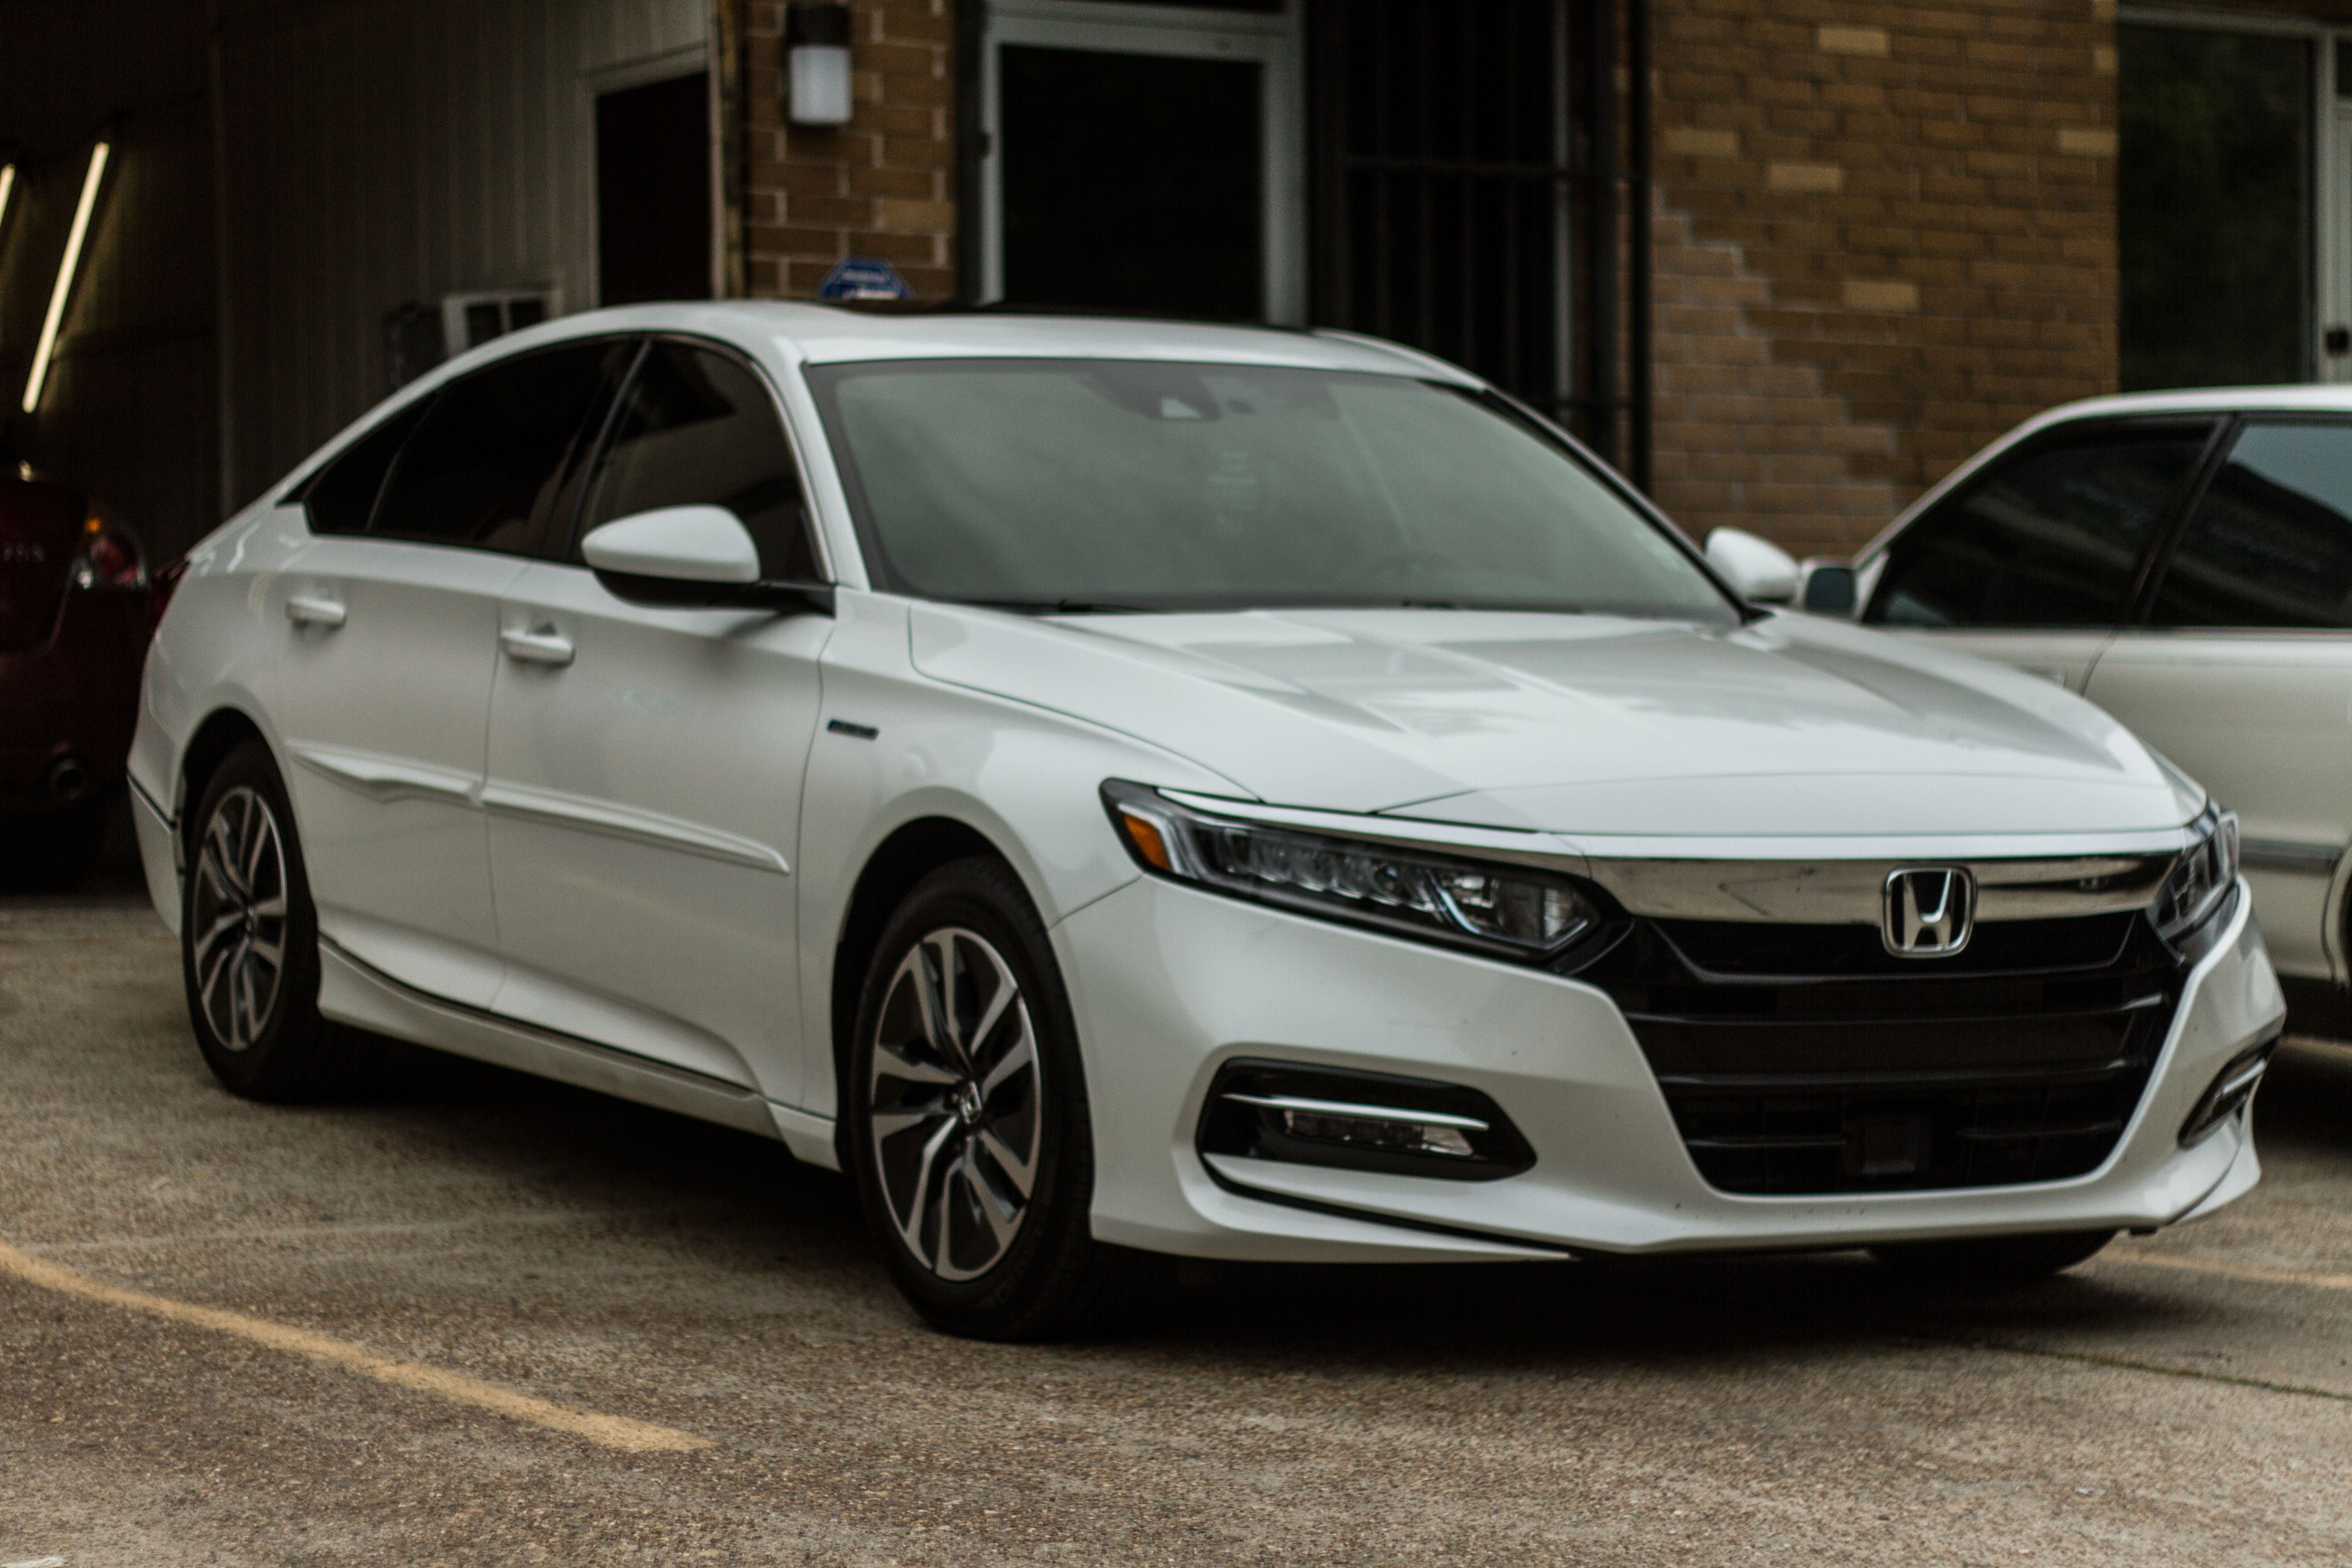 hight resolution of 2018 honda accord tinted with ceramic on all sides back windshield sunroof ceramic tint is the most effective tint in heat reduction and will preserve